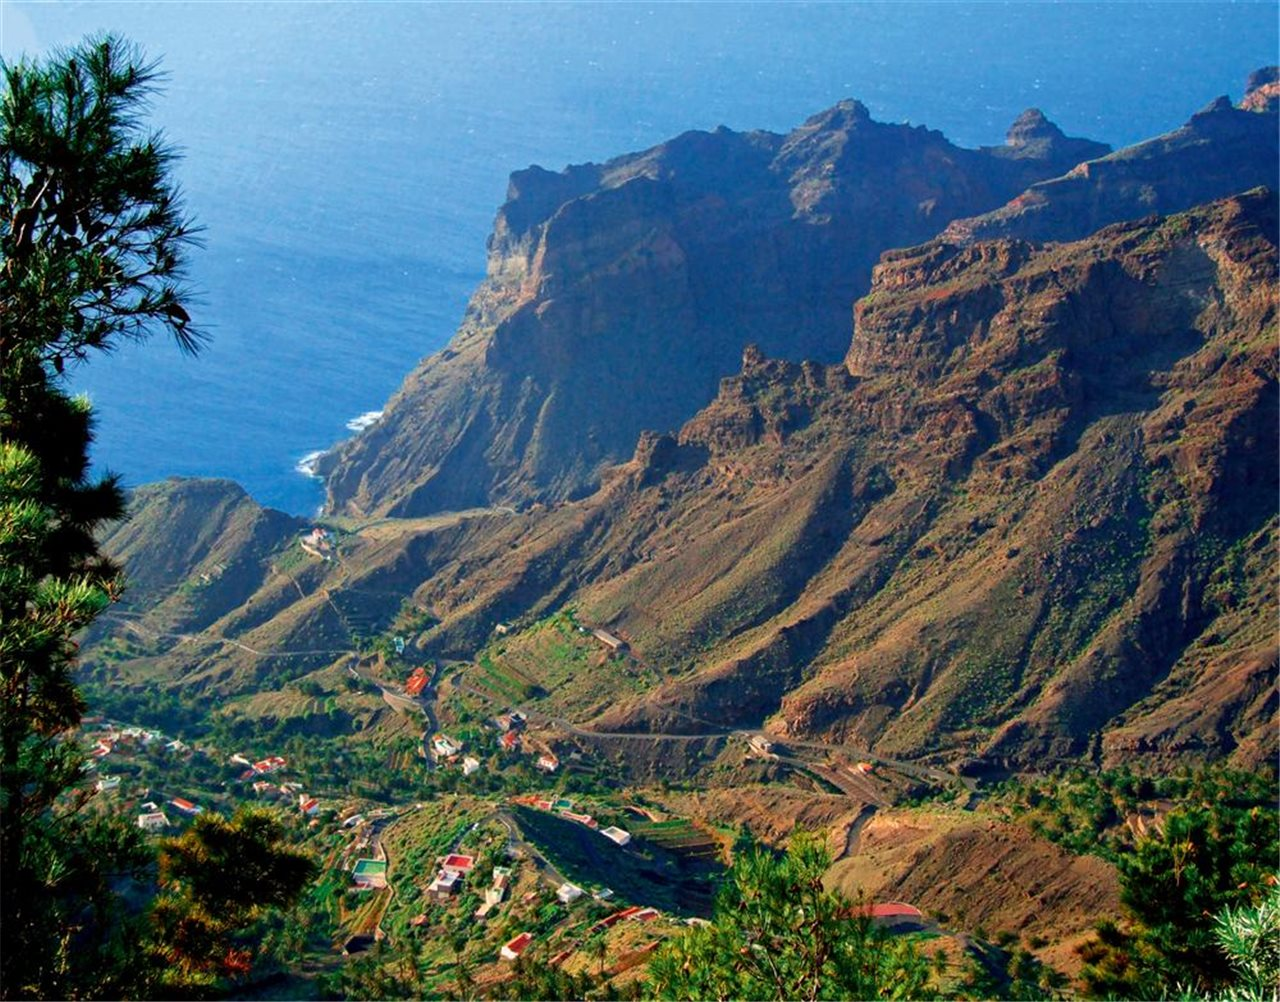 la gomera filming permits in the Canary islands